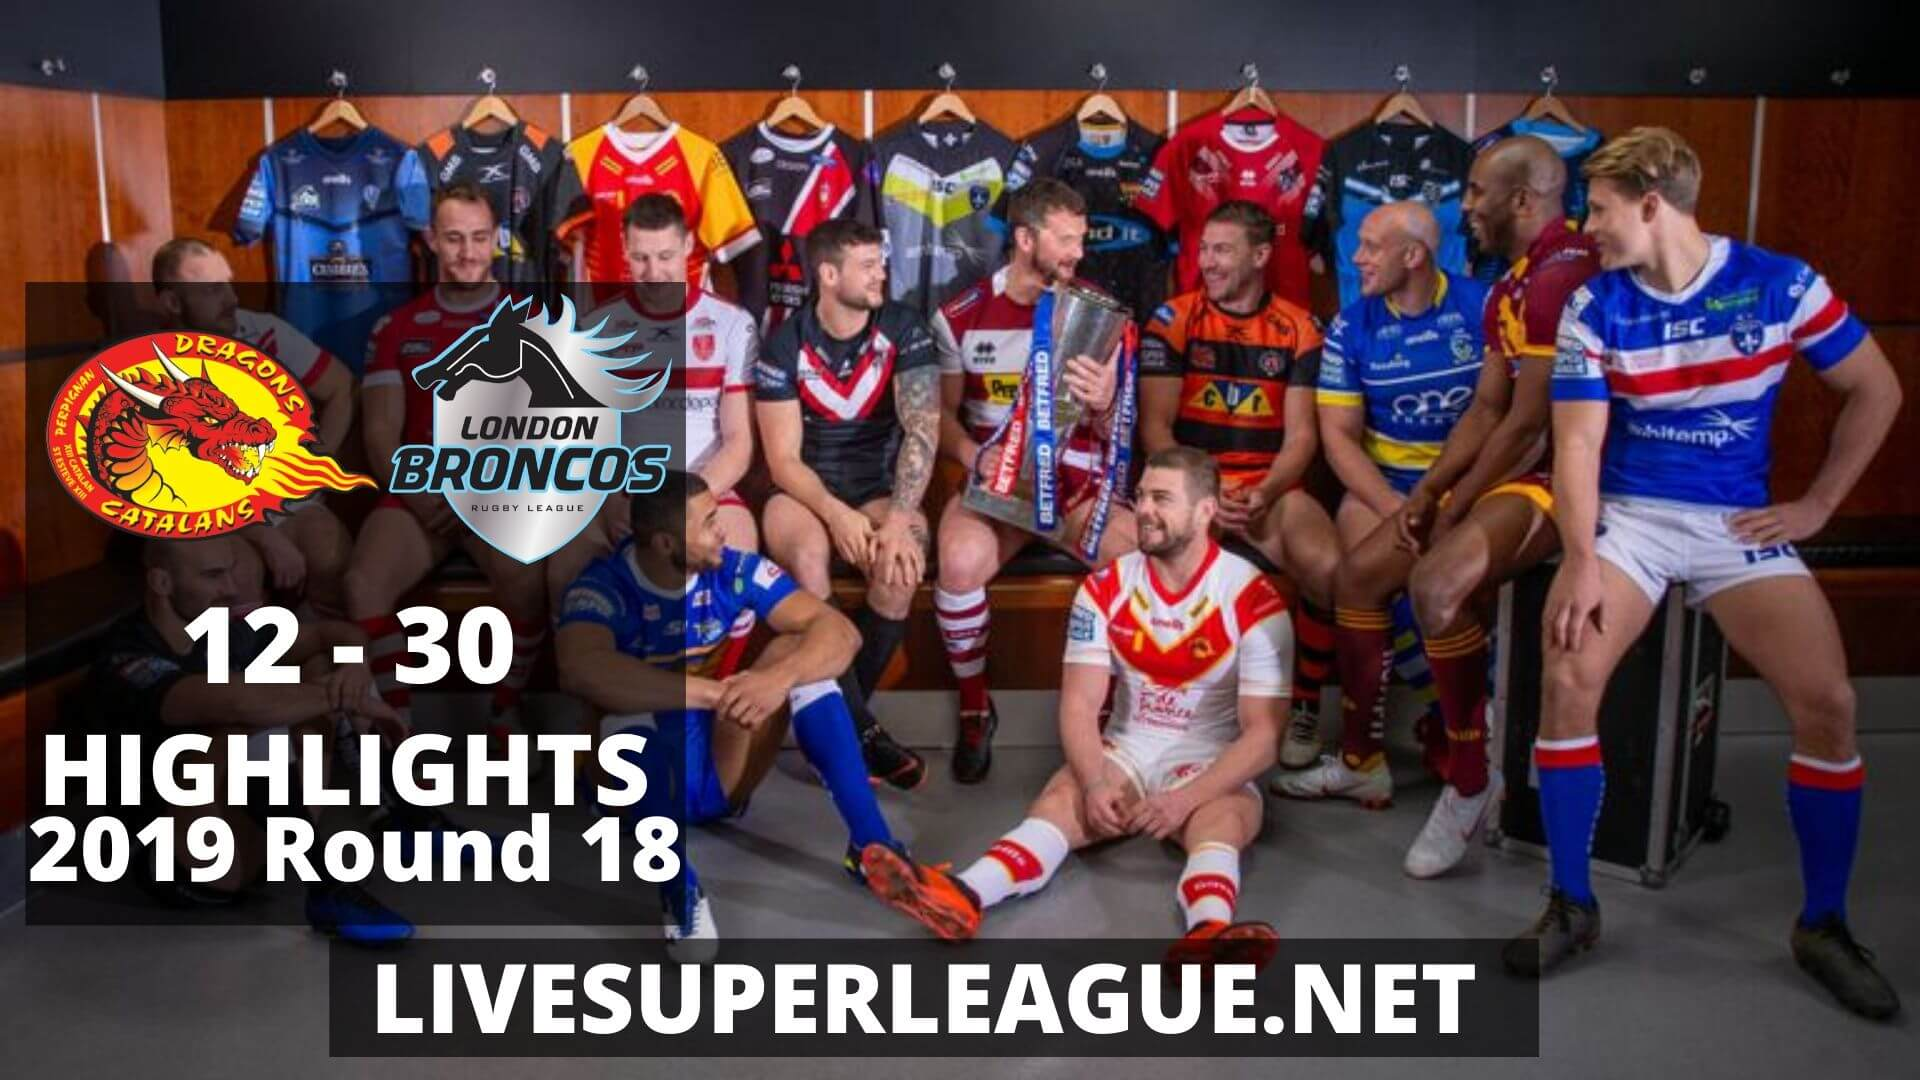 Catalans Dragons Vs London Broncos Highlights 2019 Round 18